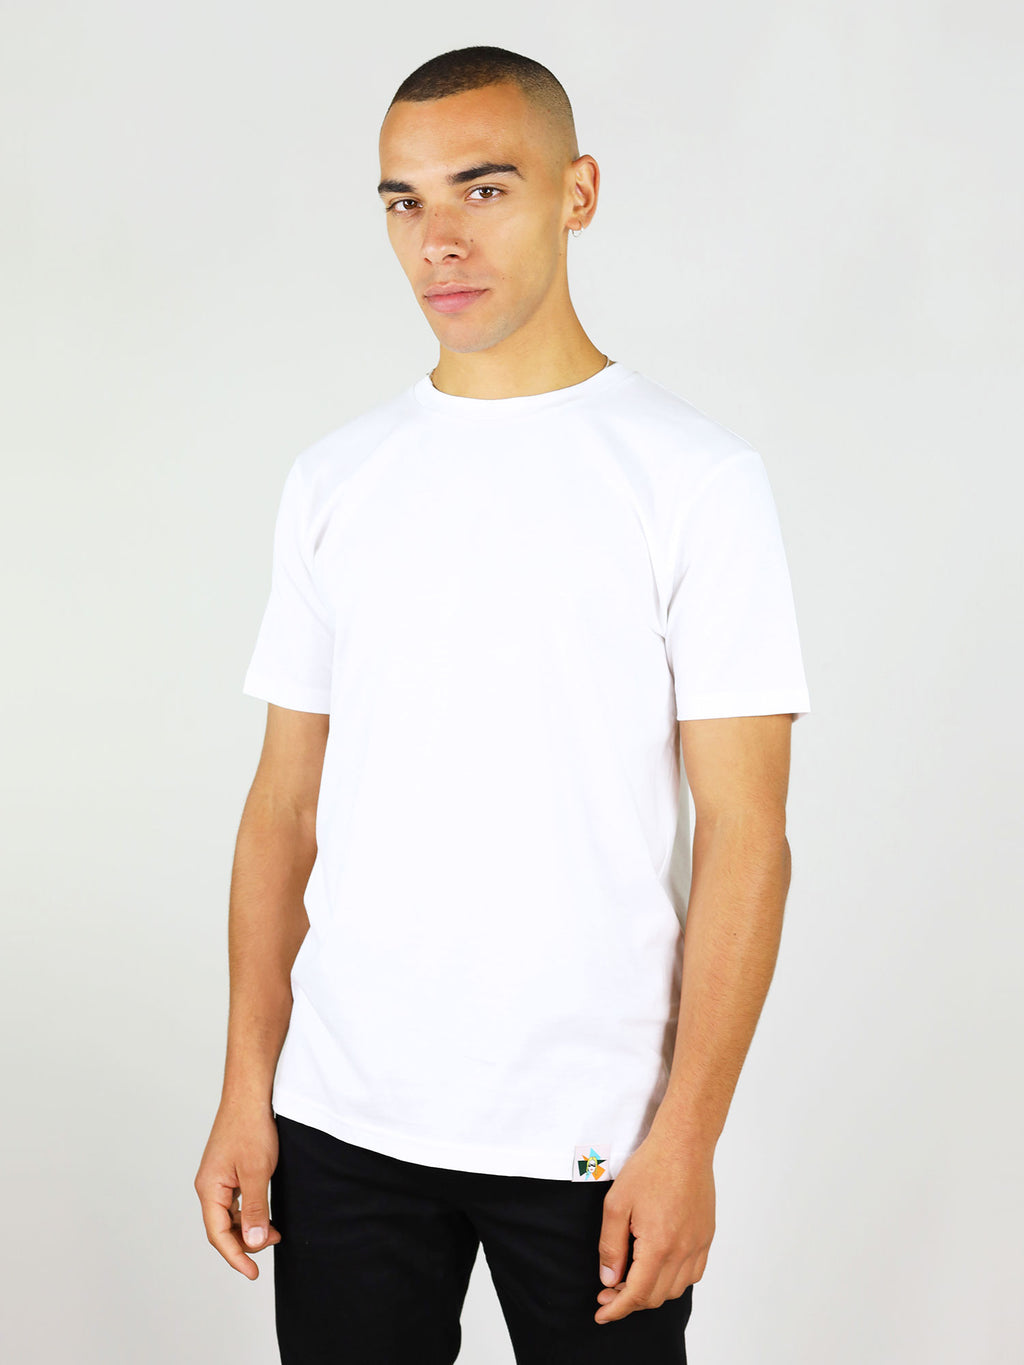 Gone rogue menswear organic cotton t-shirt in white by blonde gone rogue